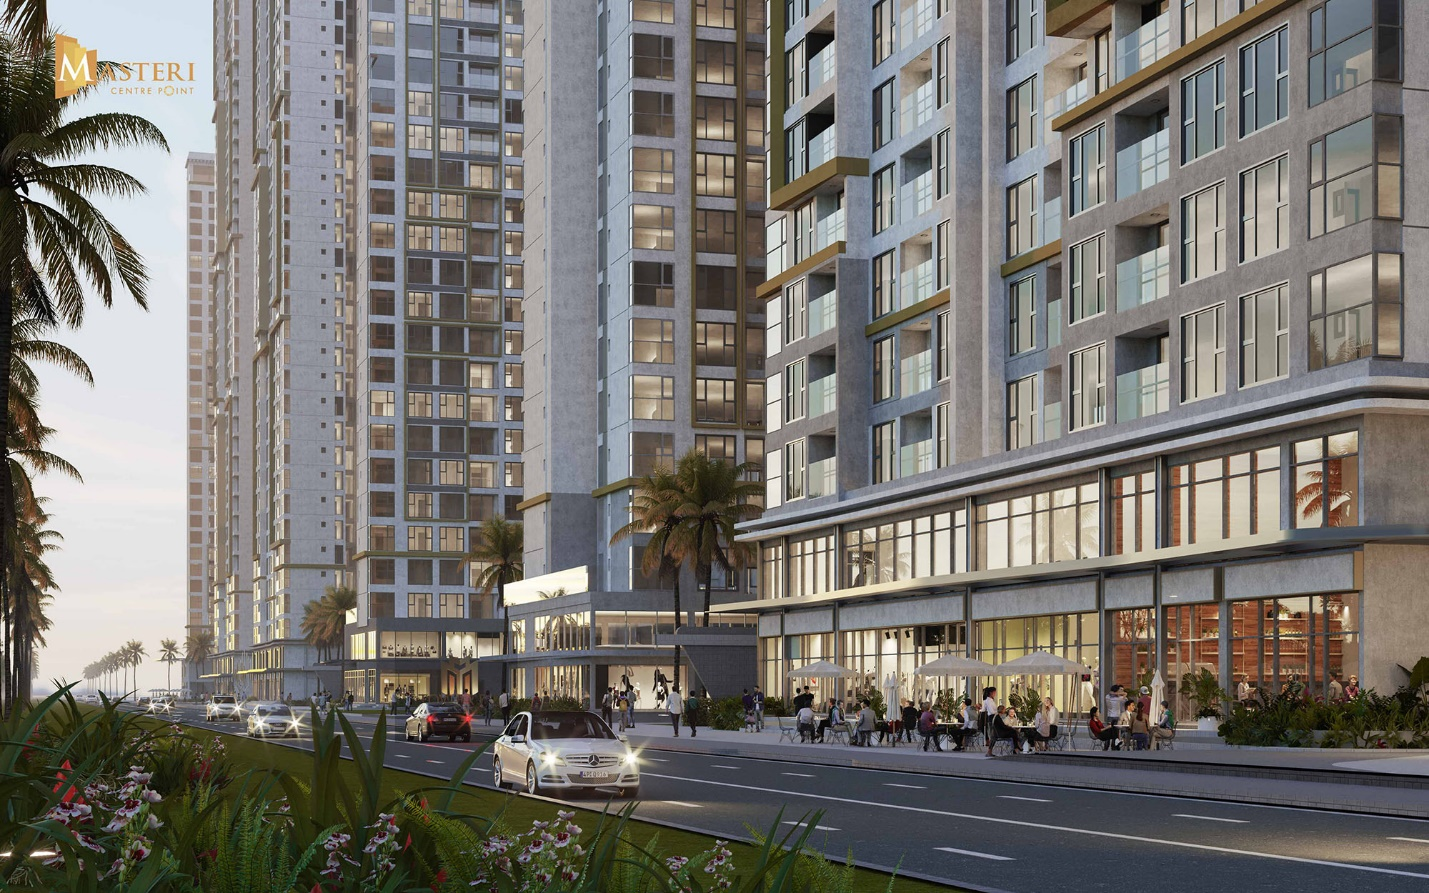 Masteri Centre Point is home to many exclusive residential benefits.